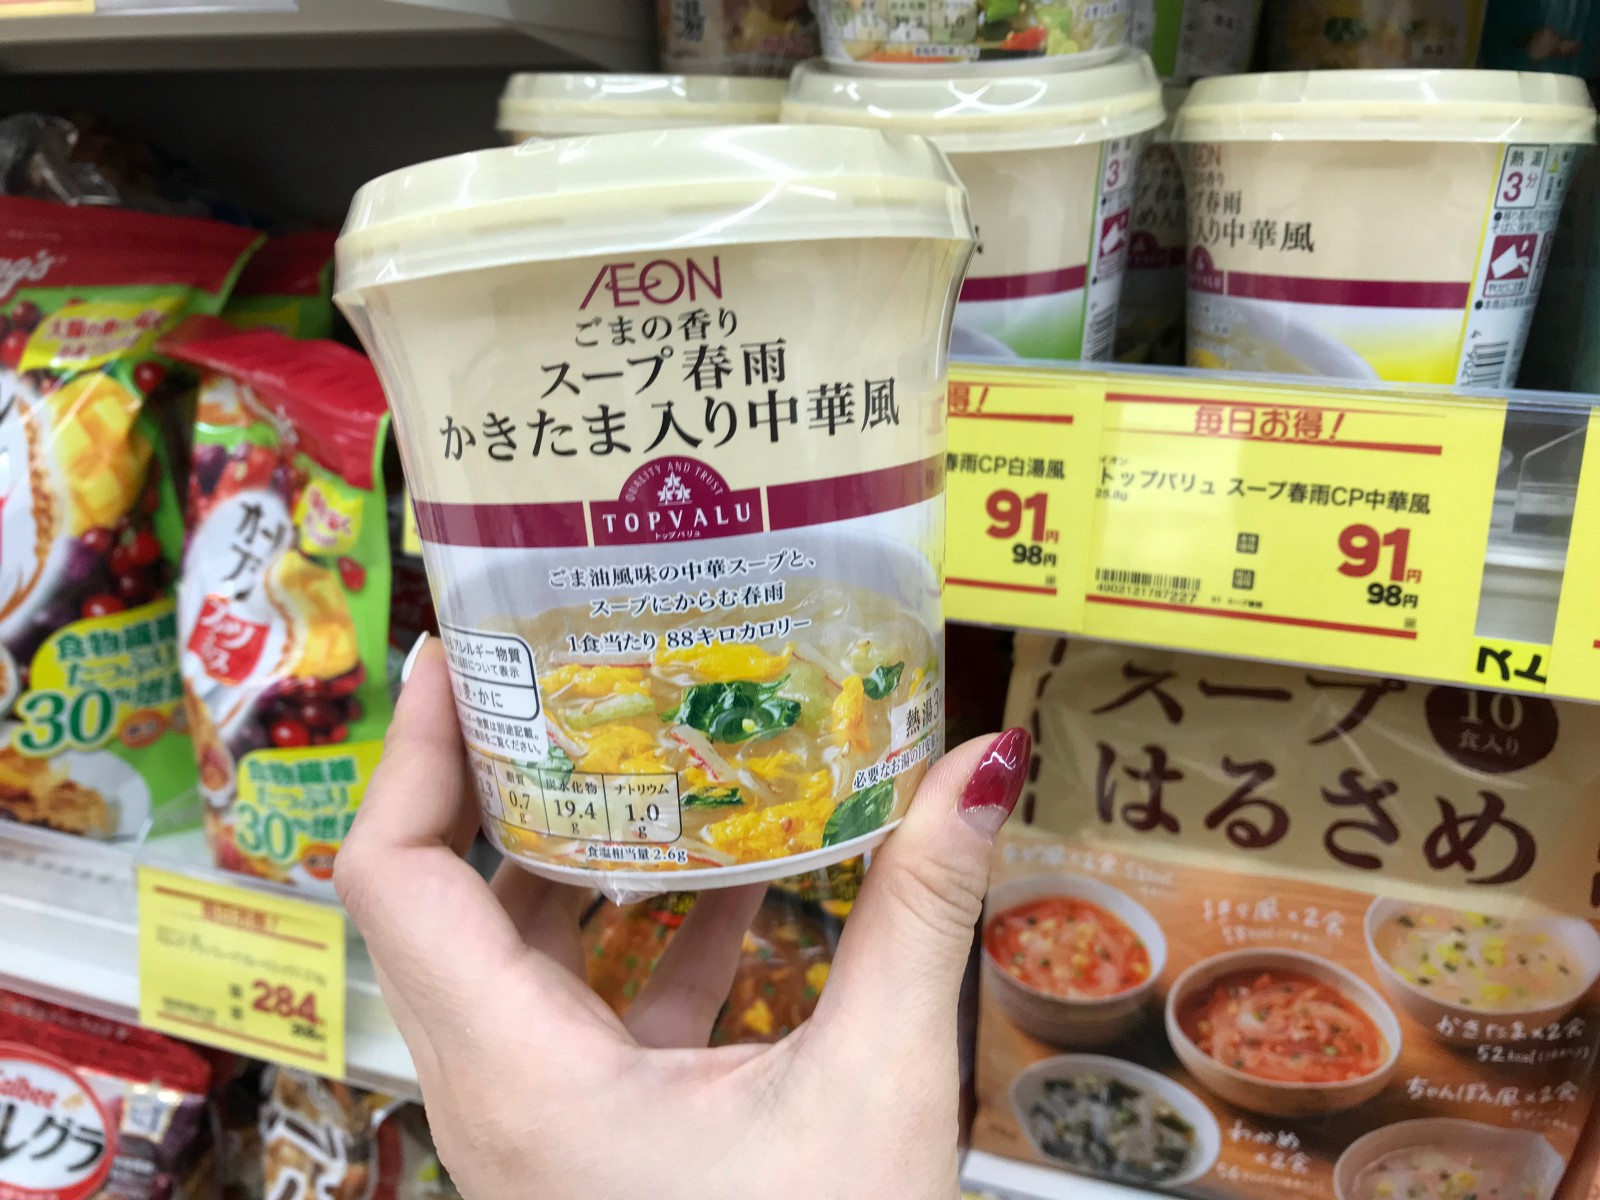 Instant cup soup sold at welcia